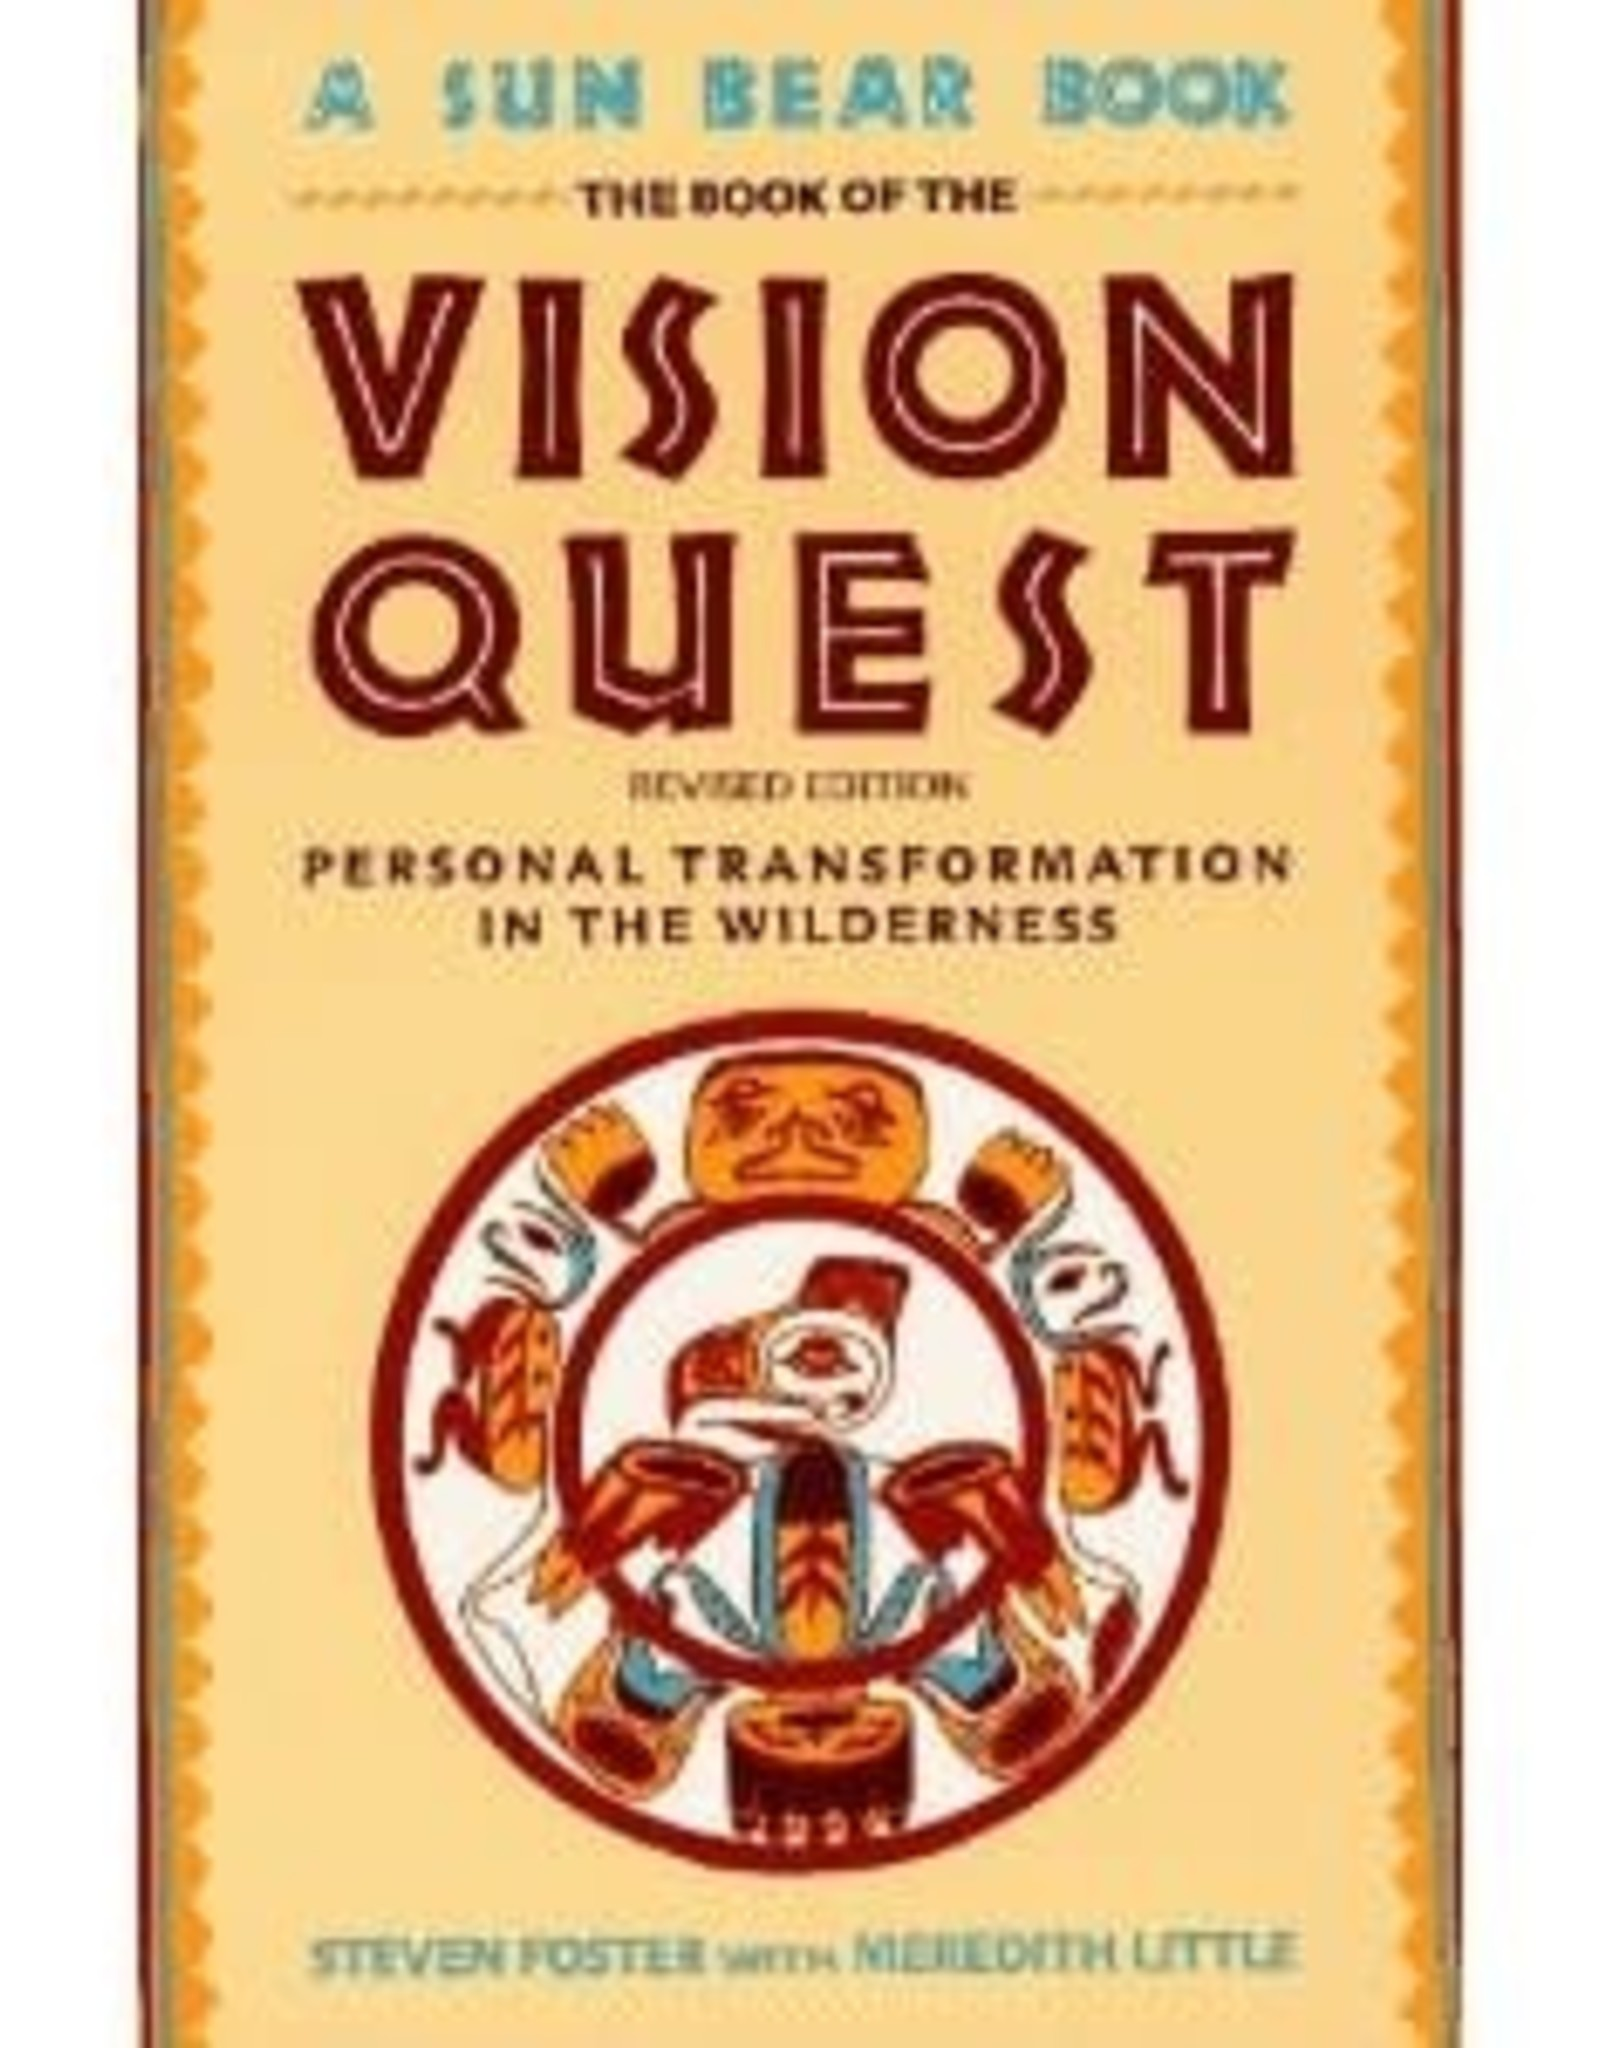 Steven Foster Vision Quest by Steven Foster & Meredith Little